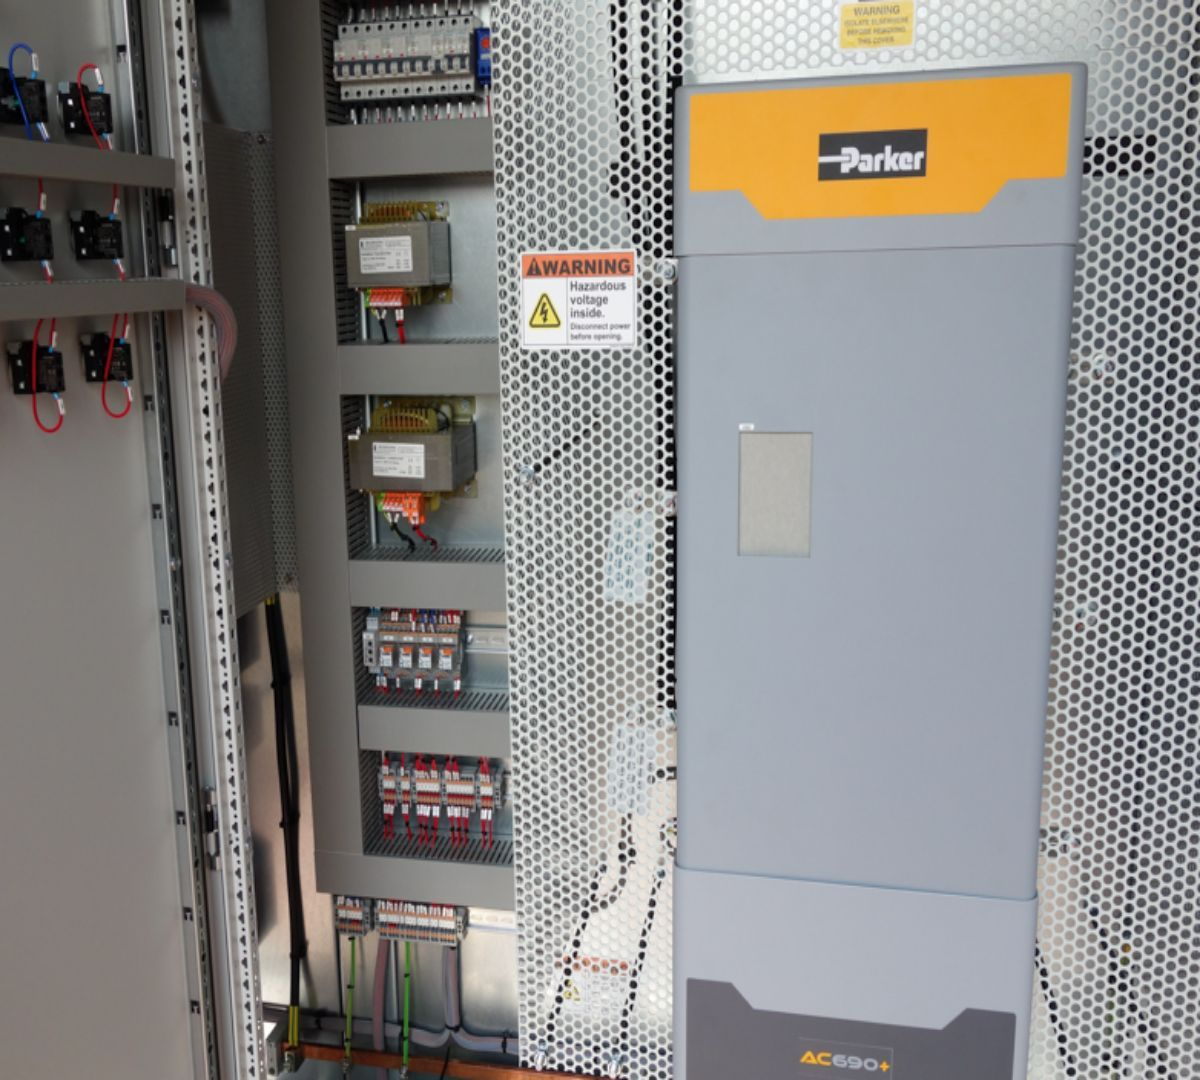 Control panels for extrusion applications